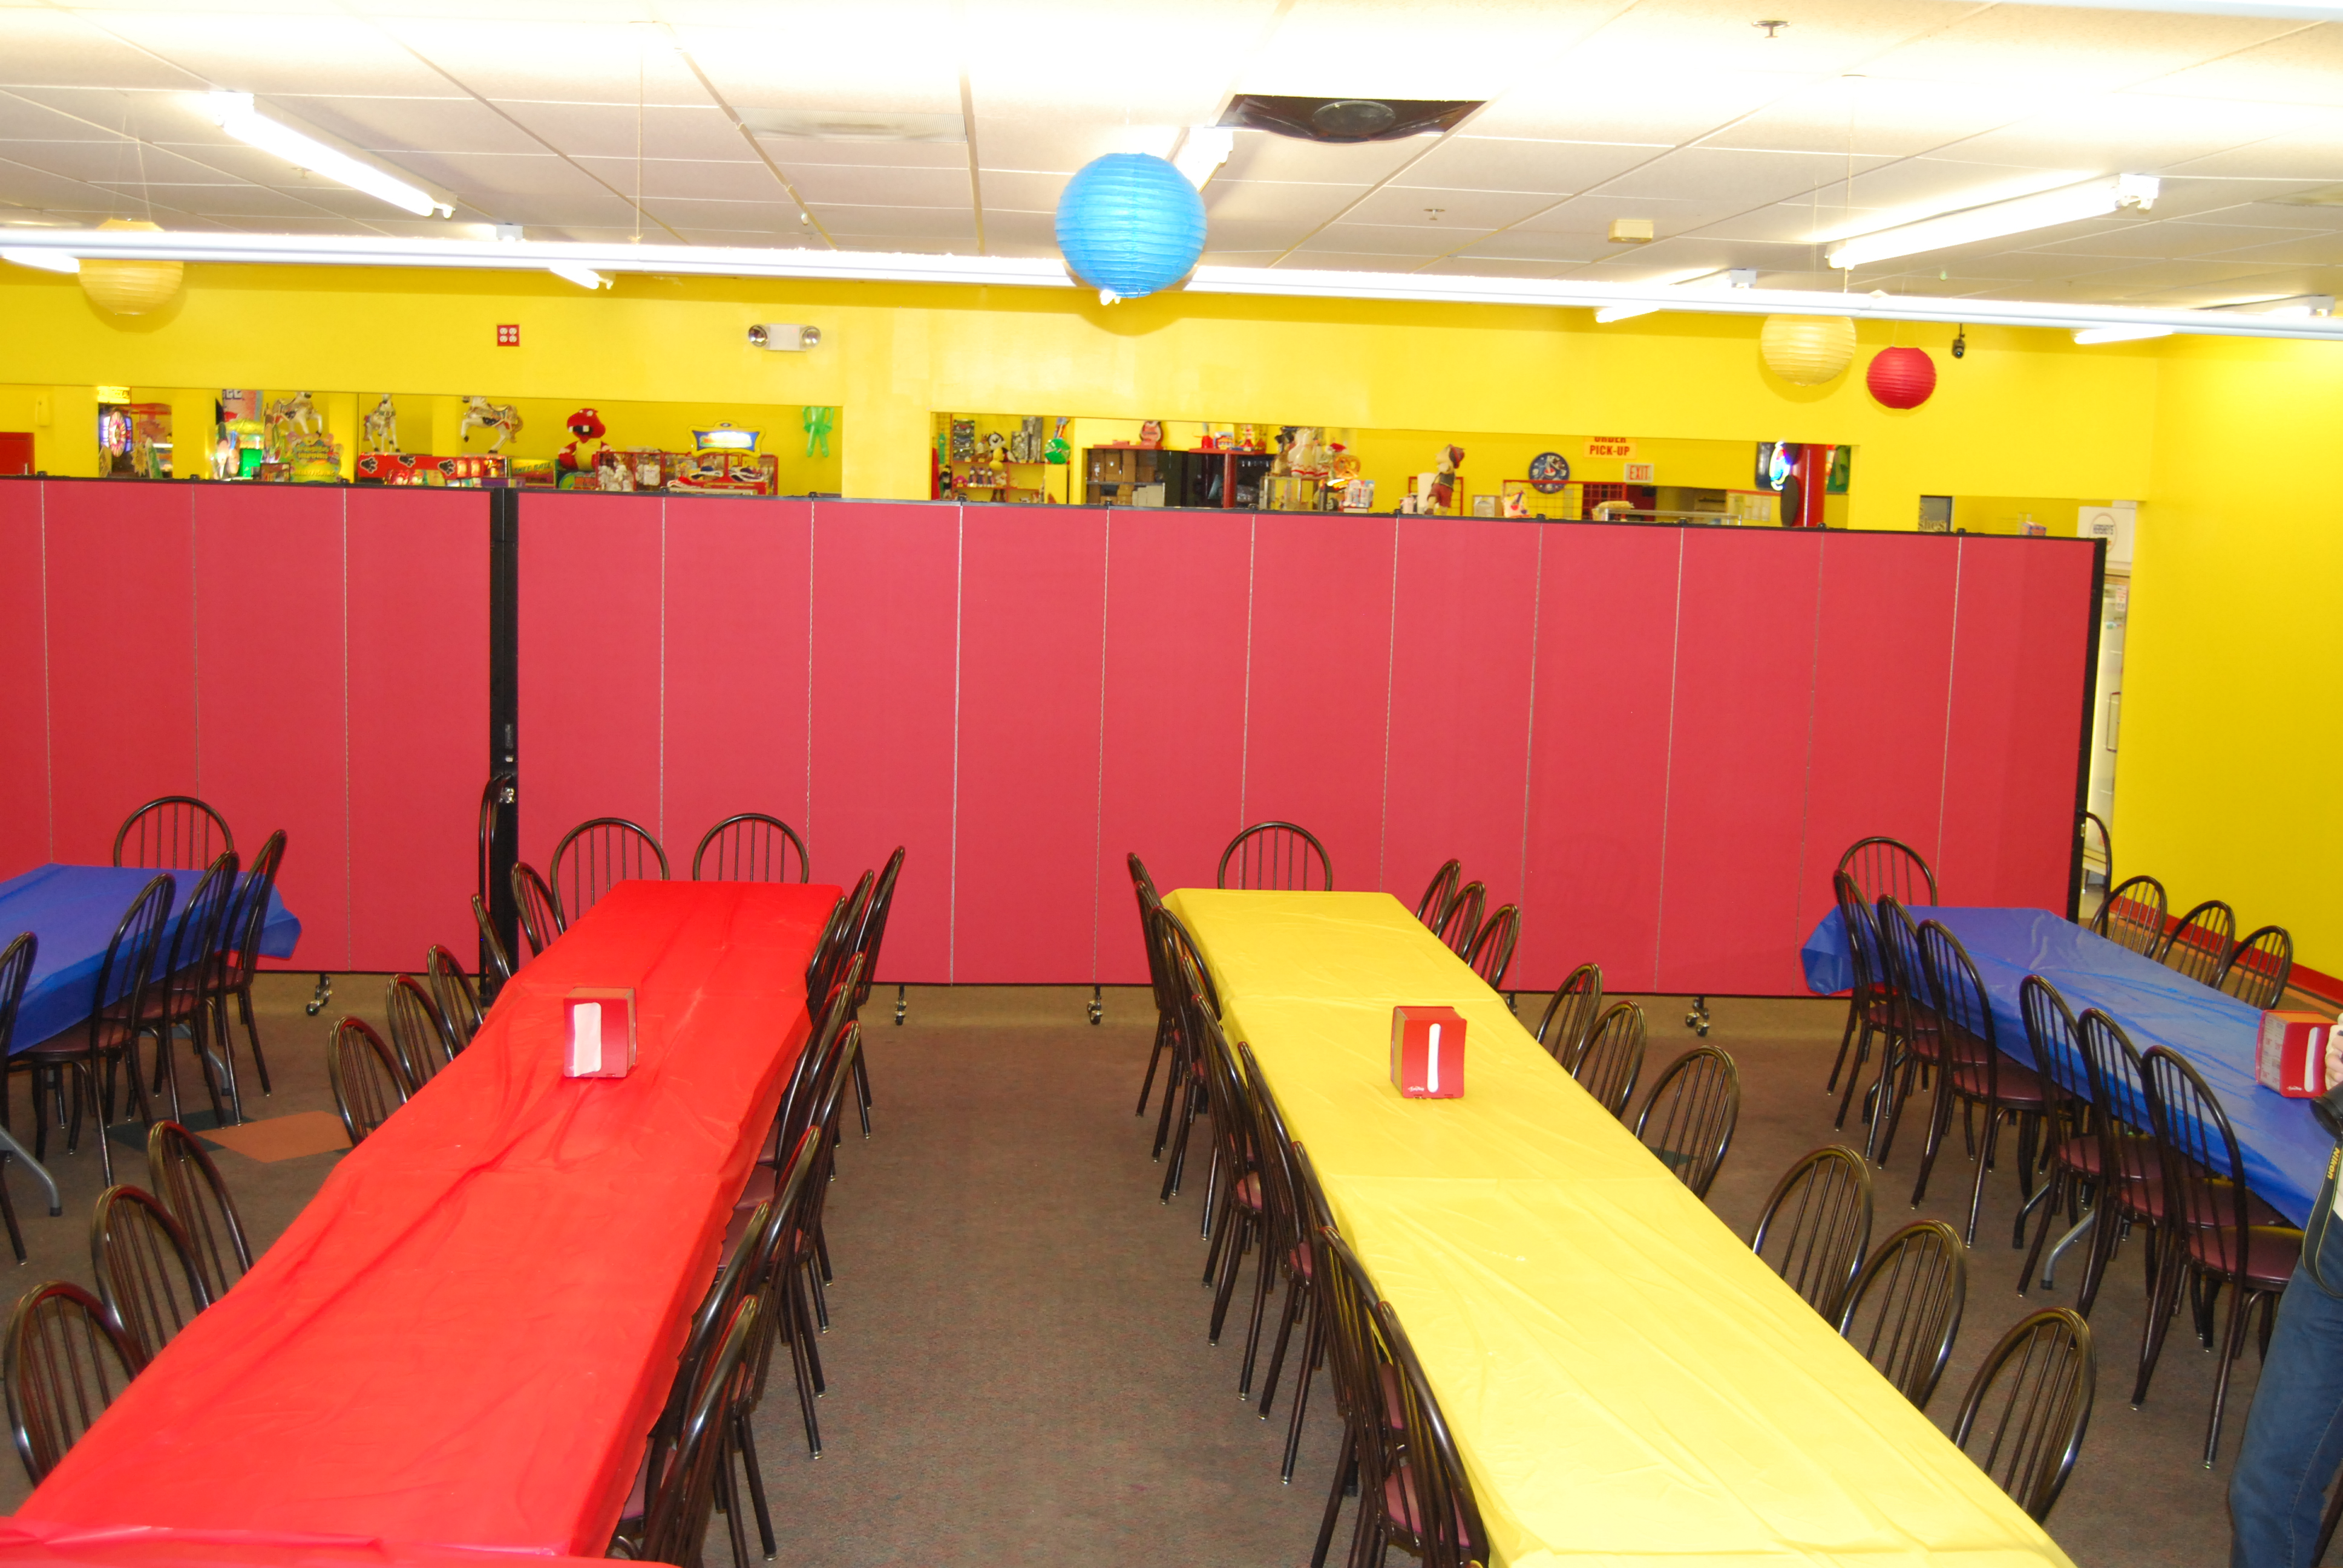 2 connected room dividers create a wall separating a party room from games at an indoor amusement center.